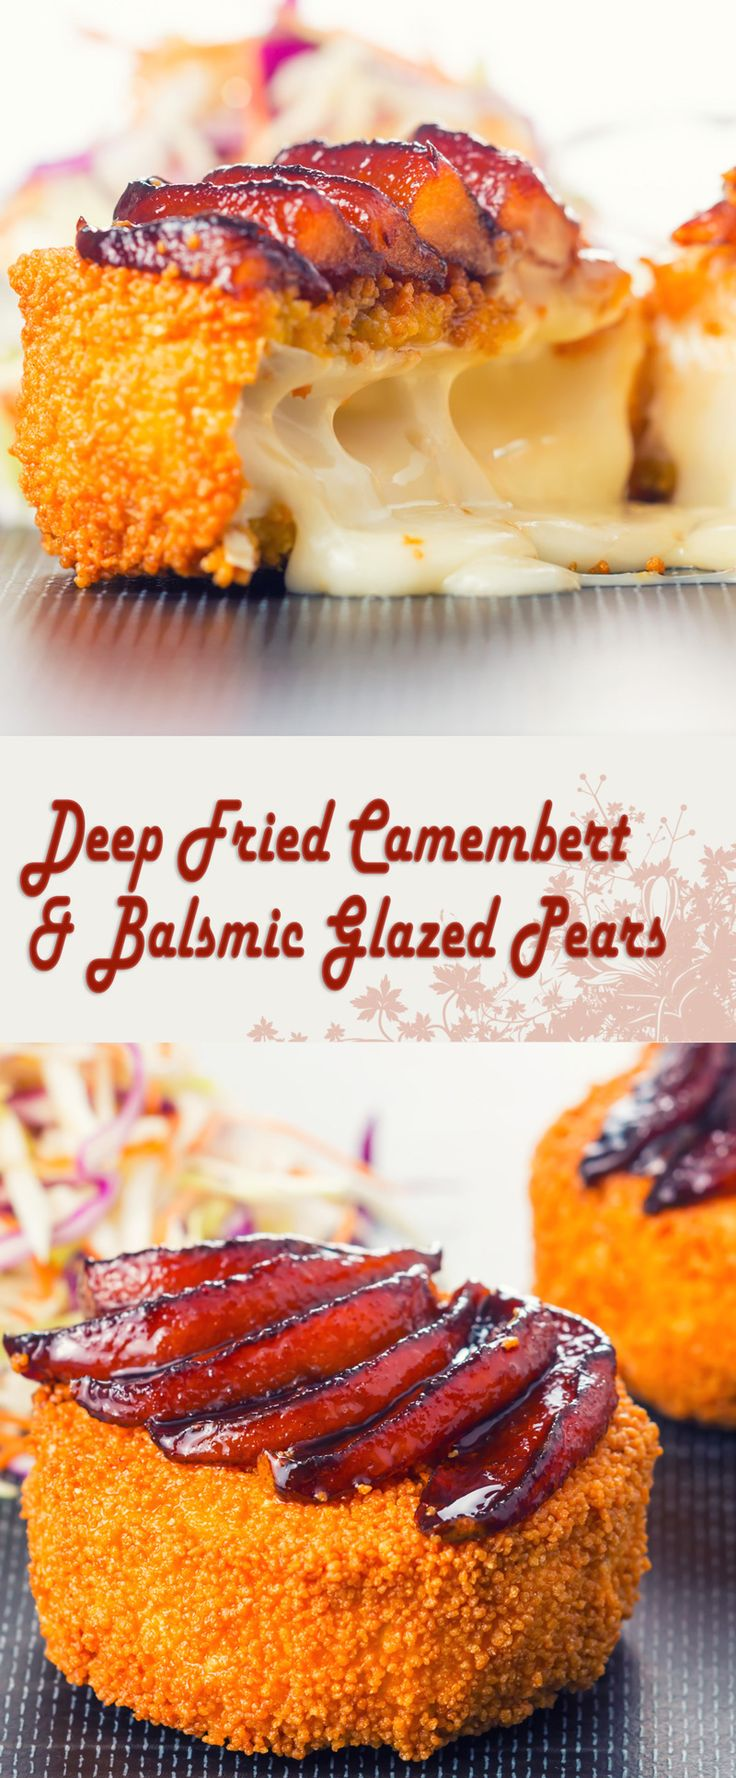 "THis is a Different Recipe - Mixes Sweet with Savory (the Camambert Cheese w/ the carmelized pears ☻) - if YOU Want something unique today ...   ""Deep Fried Camambert & Balsamic Glazed Pears""  (can substitute Goats cheese too, for the Camambert) ☻"